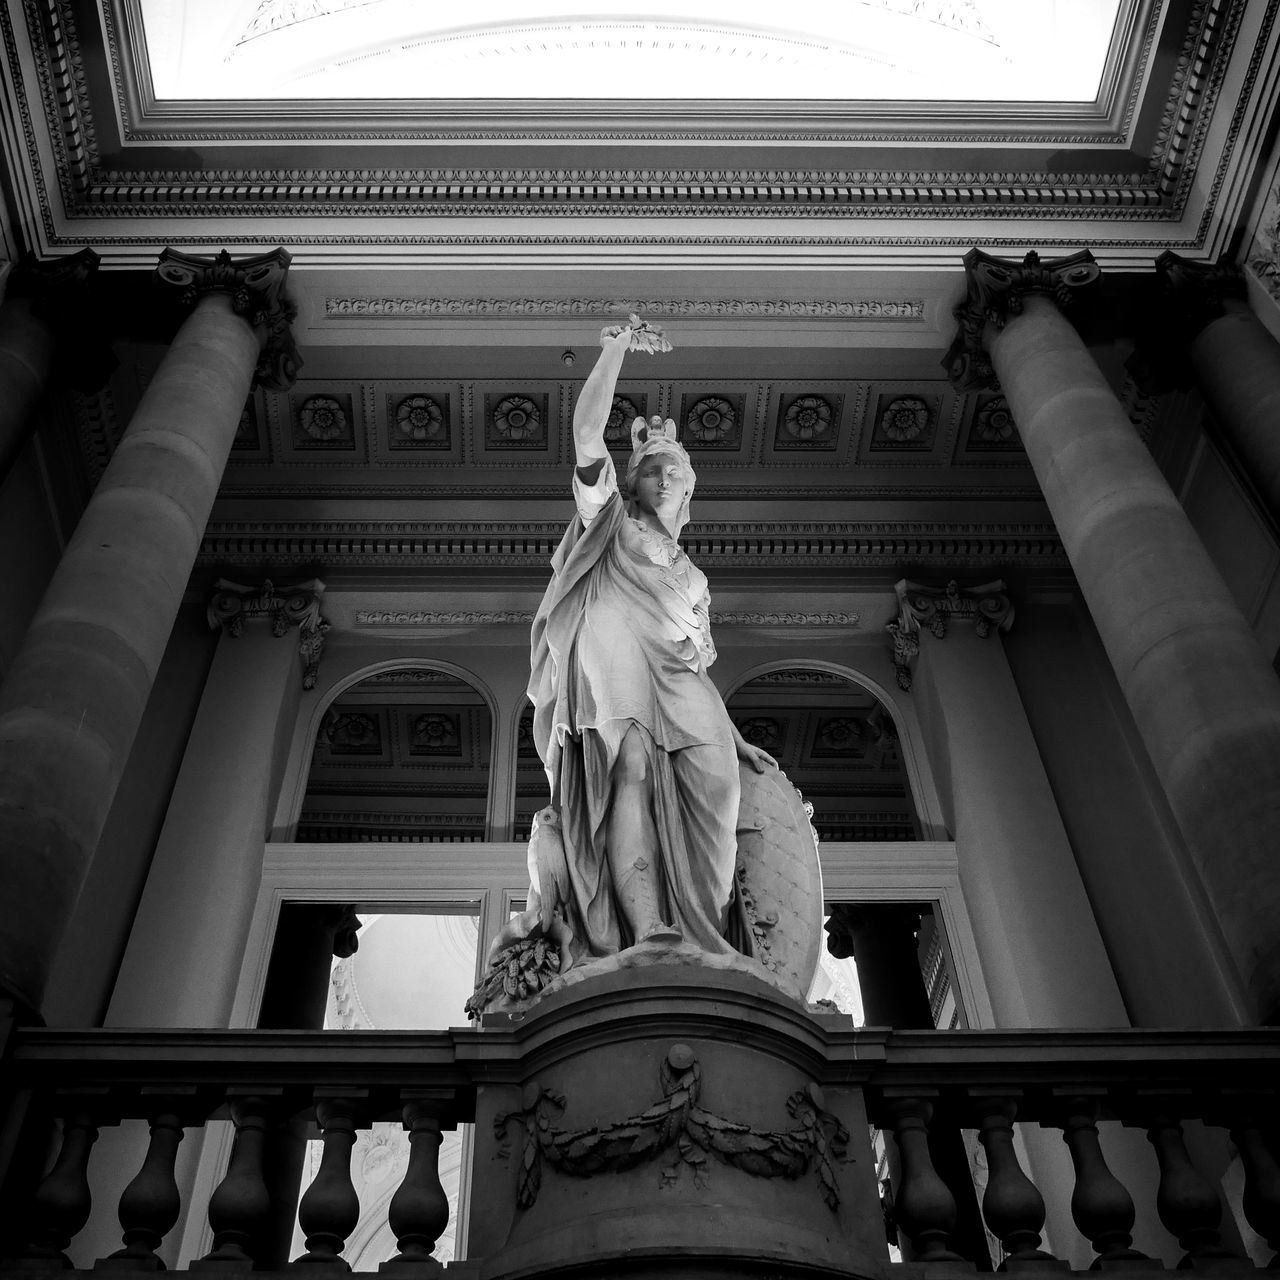 Architectural Column Architecture Art Black And White Black And White Photography Blackandwhite Columns Fine Art Fine Art Photography Historic History Human Representation Low Angle View No People Ornate Palace Roman Sculpture Squaready Squareinstapic Statue Tourism Travel Travel Destinations Traveling